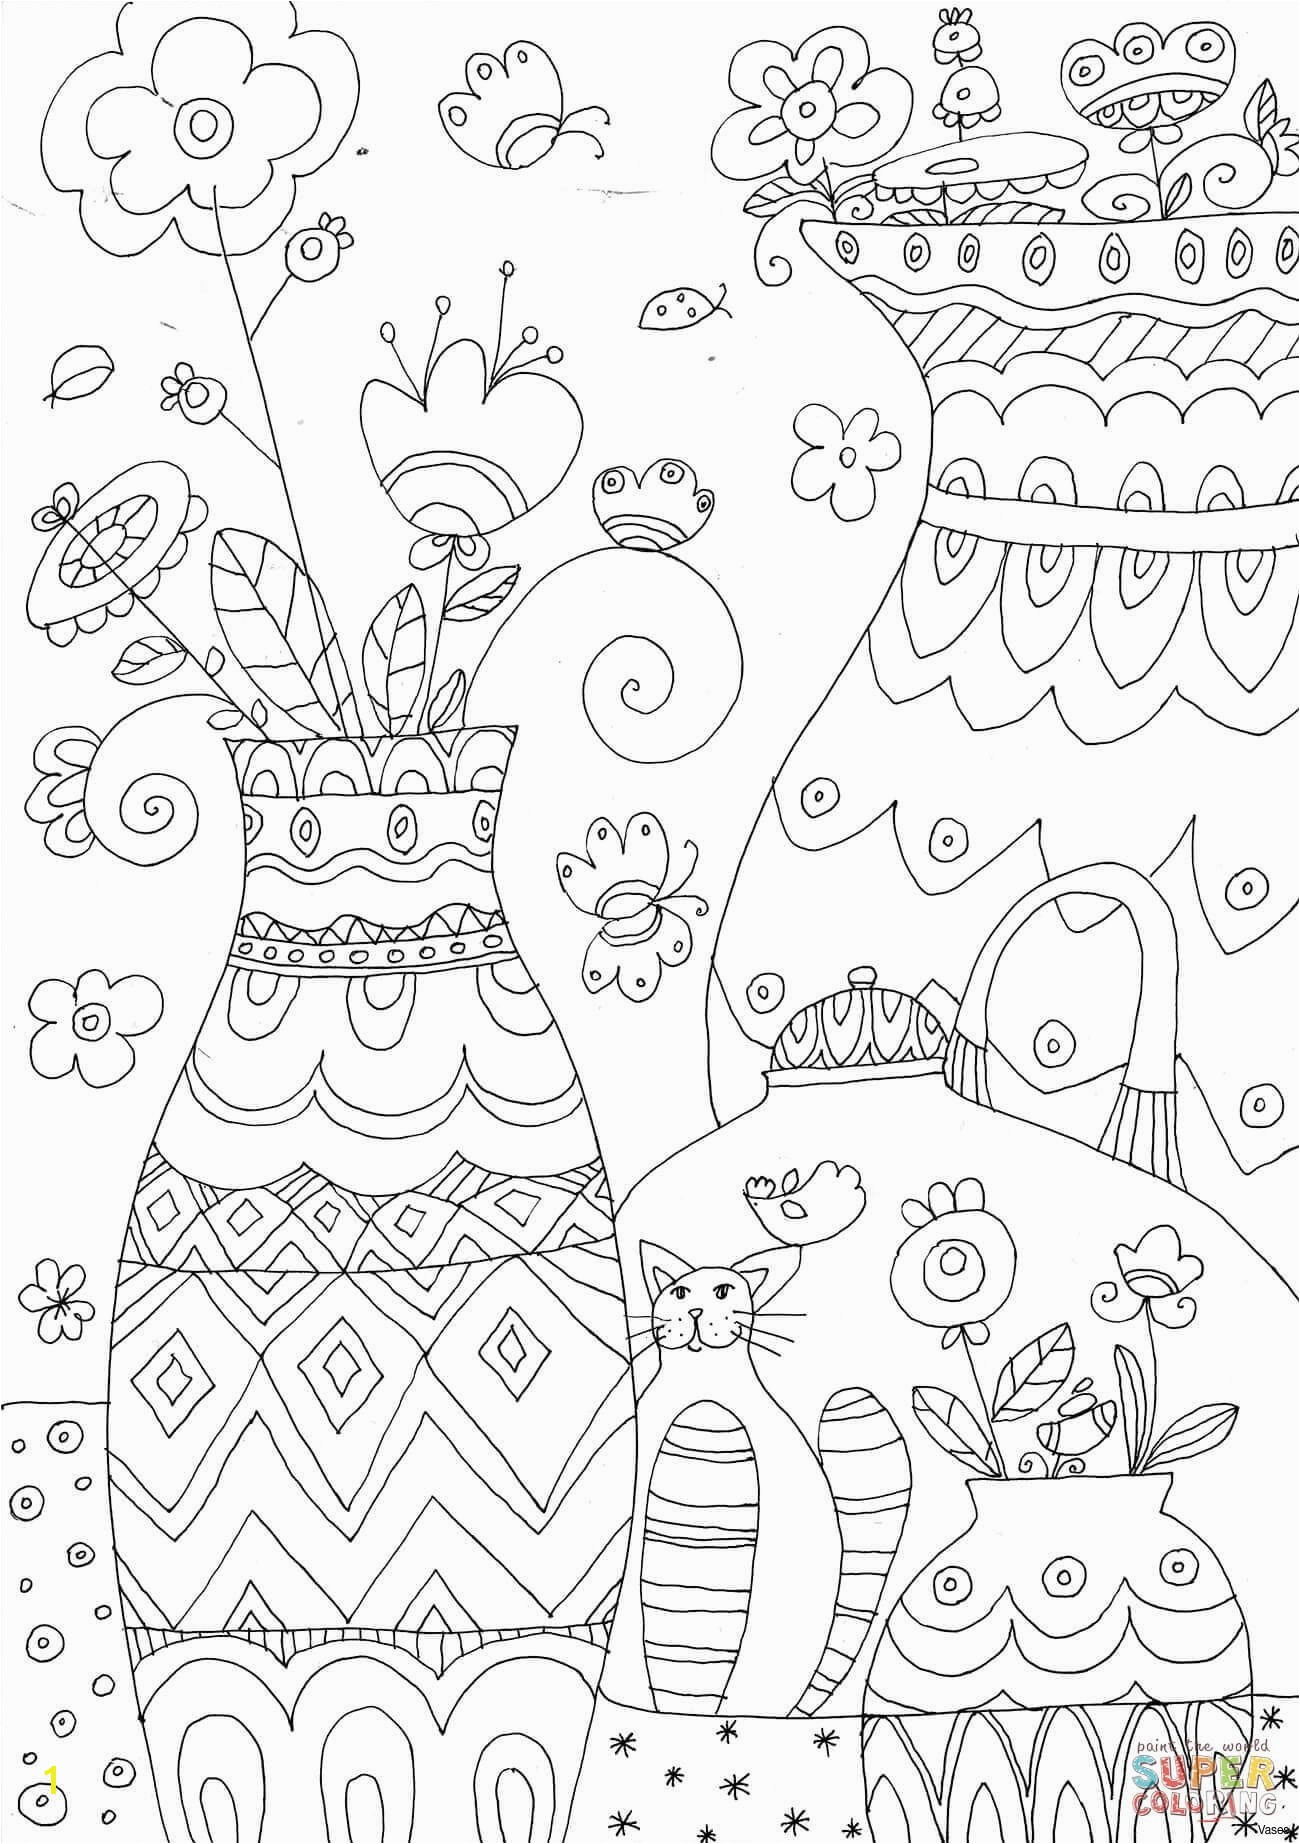 Coloring Pages to Color Best Page to Color Vases Flowers In Vase Coloring Pages A